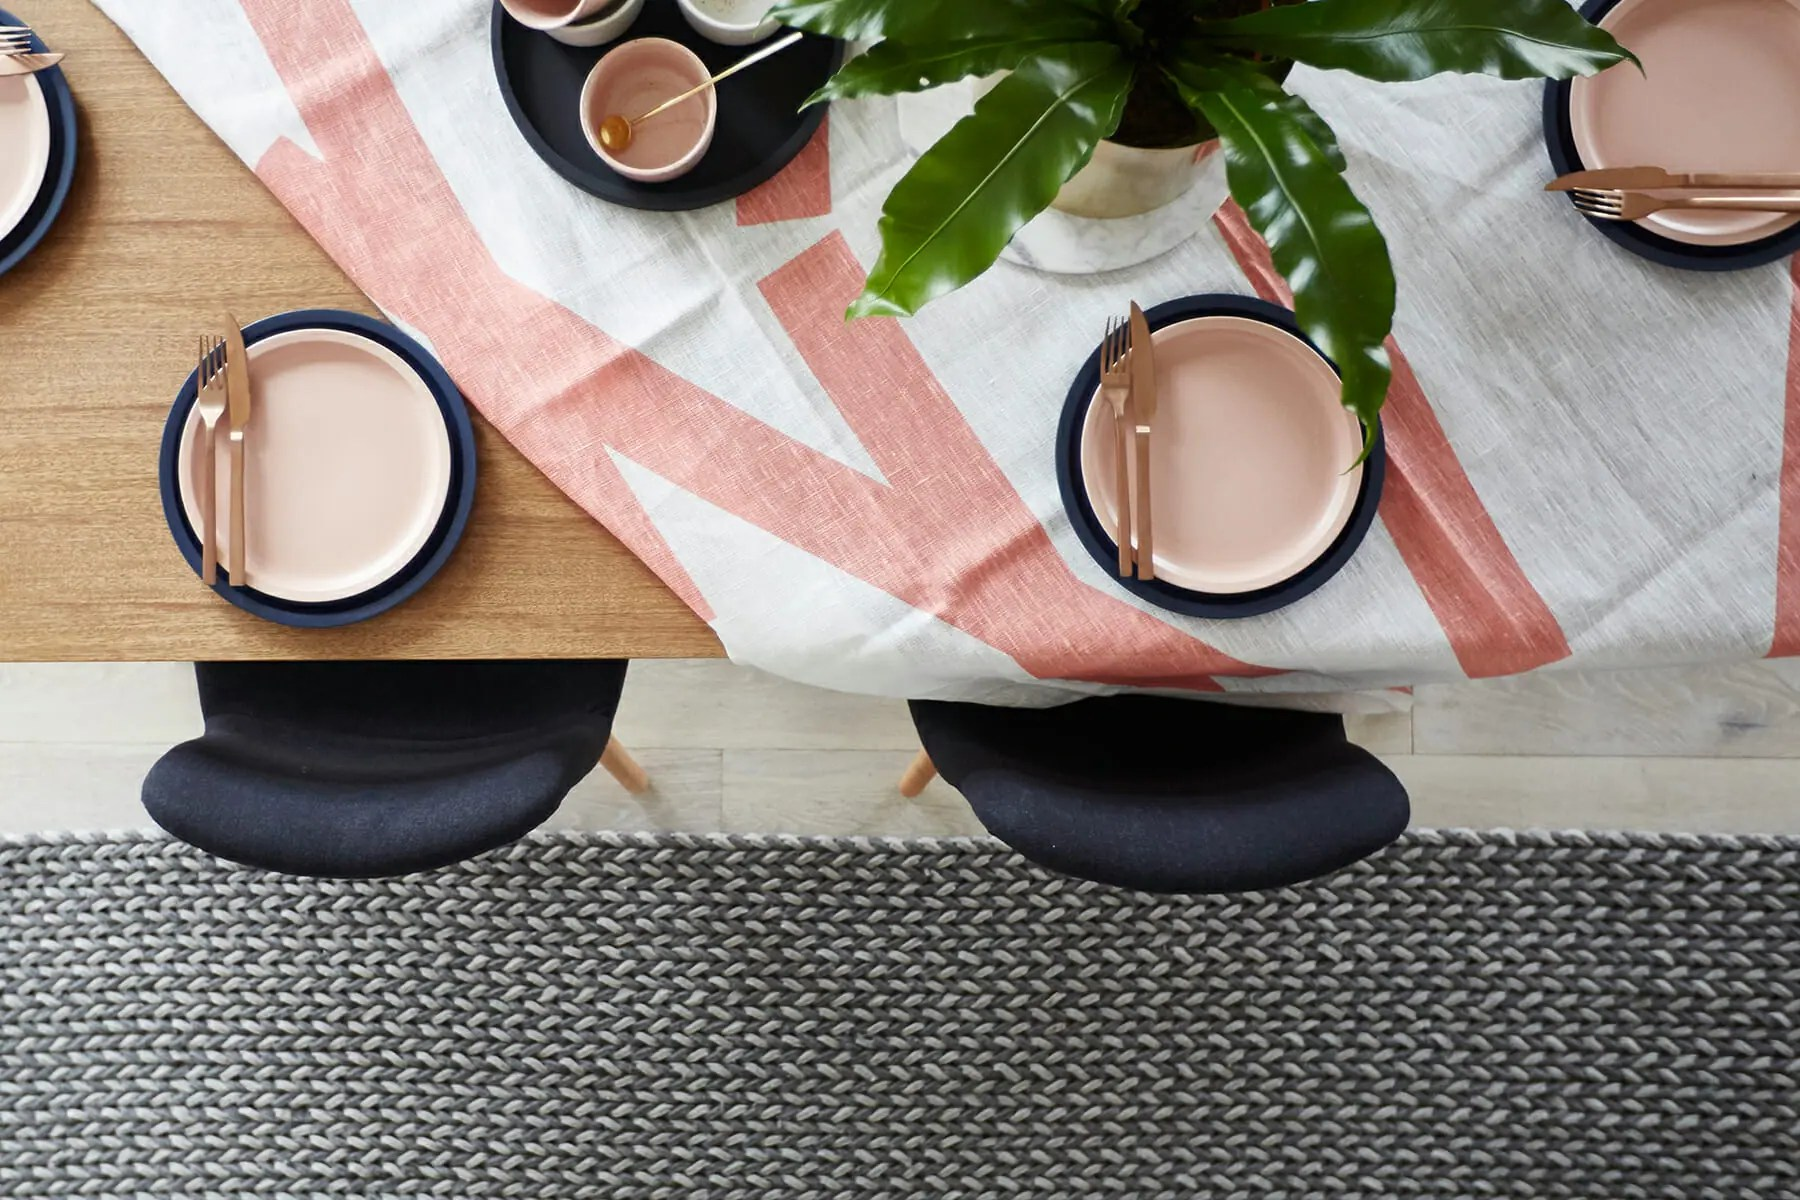 United Interiors Emma Blomfield Styling Dining Top